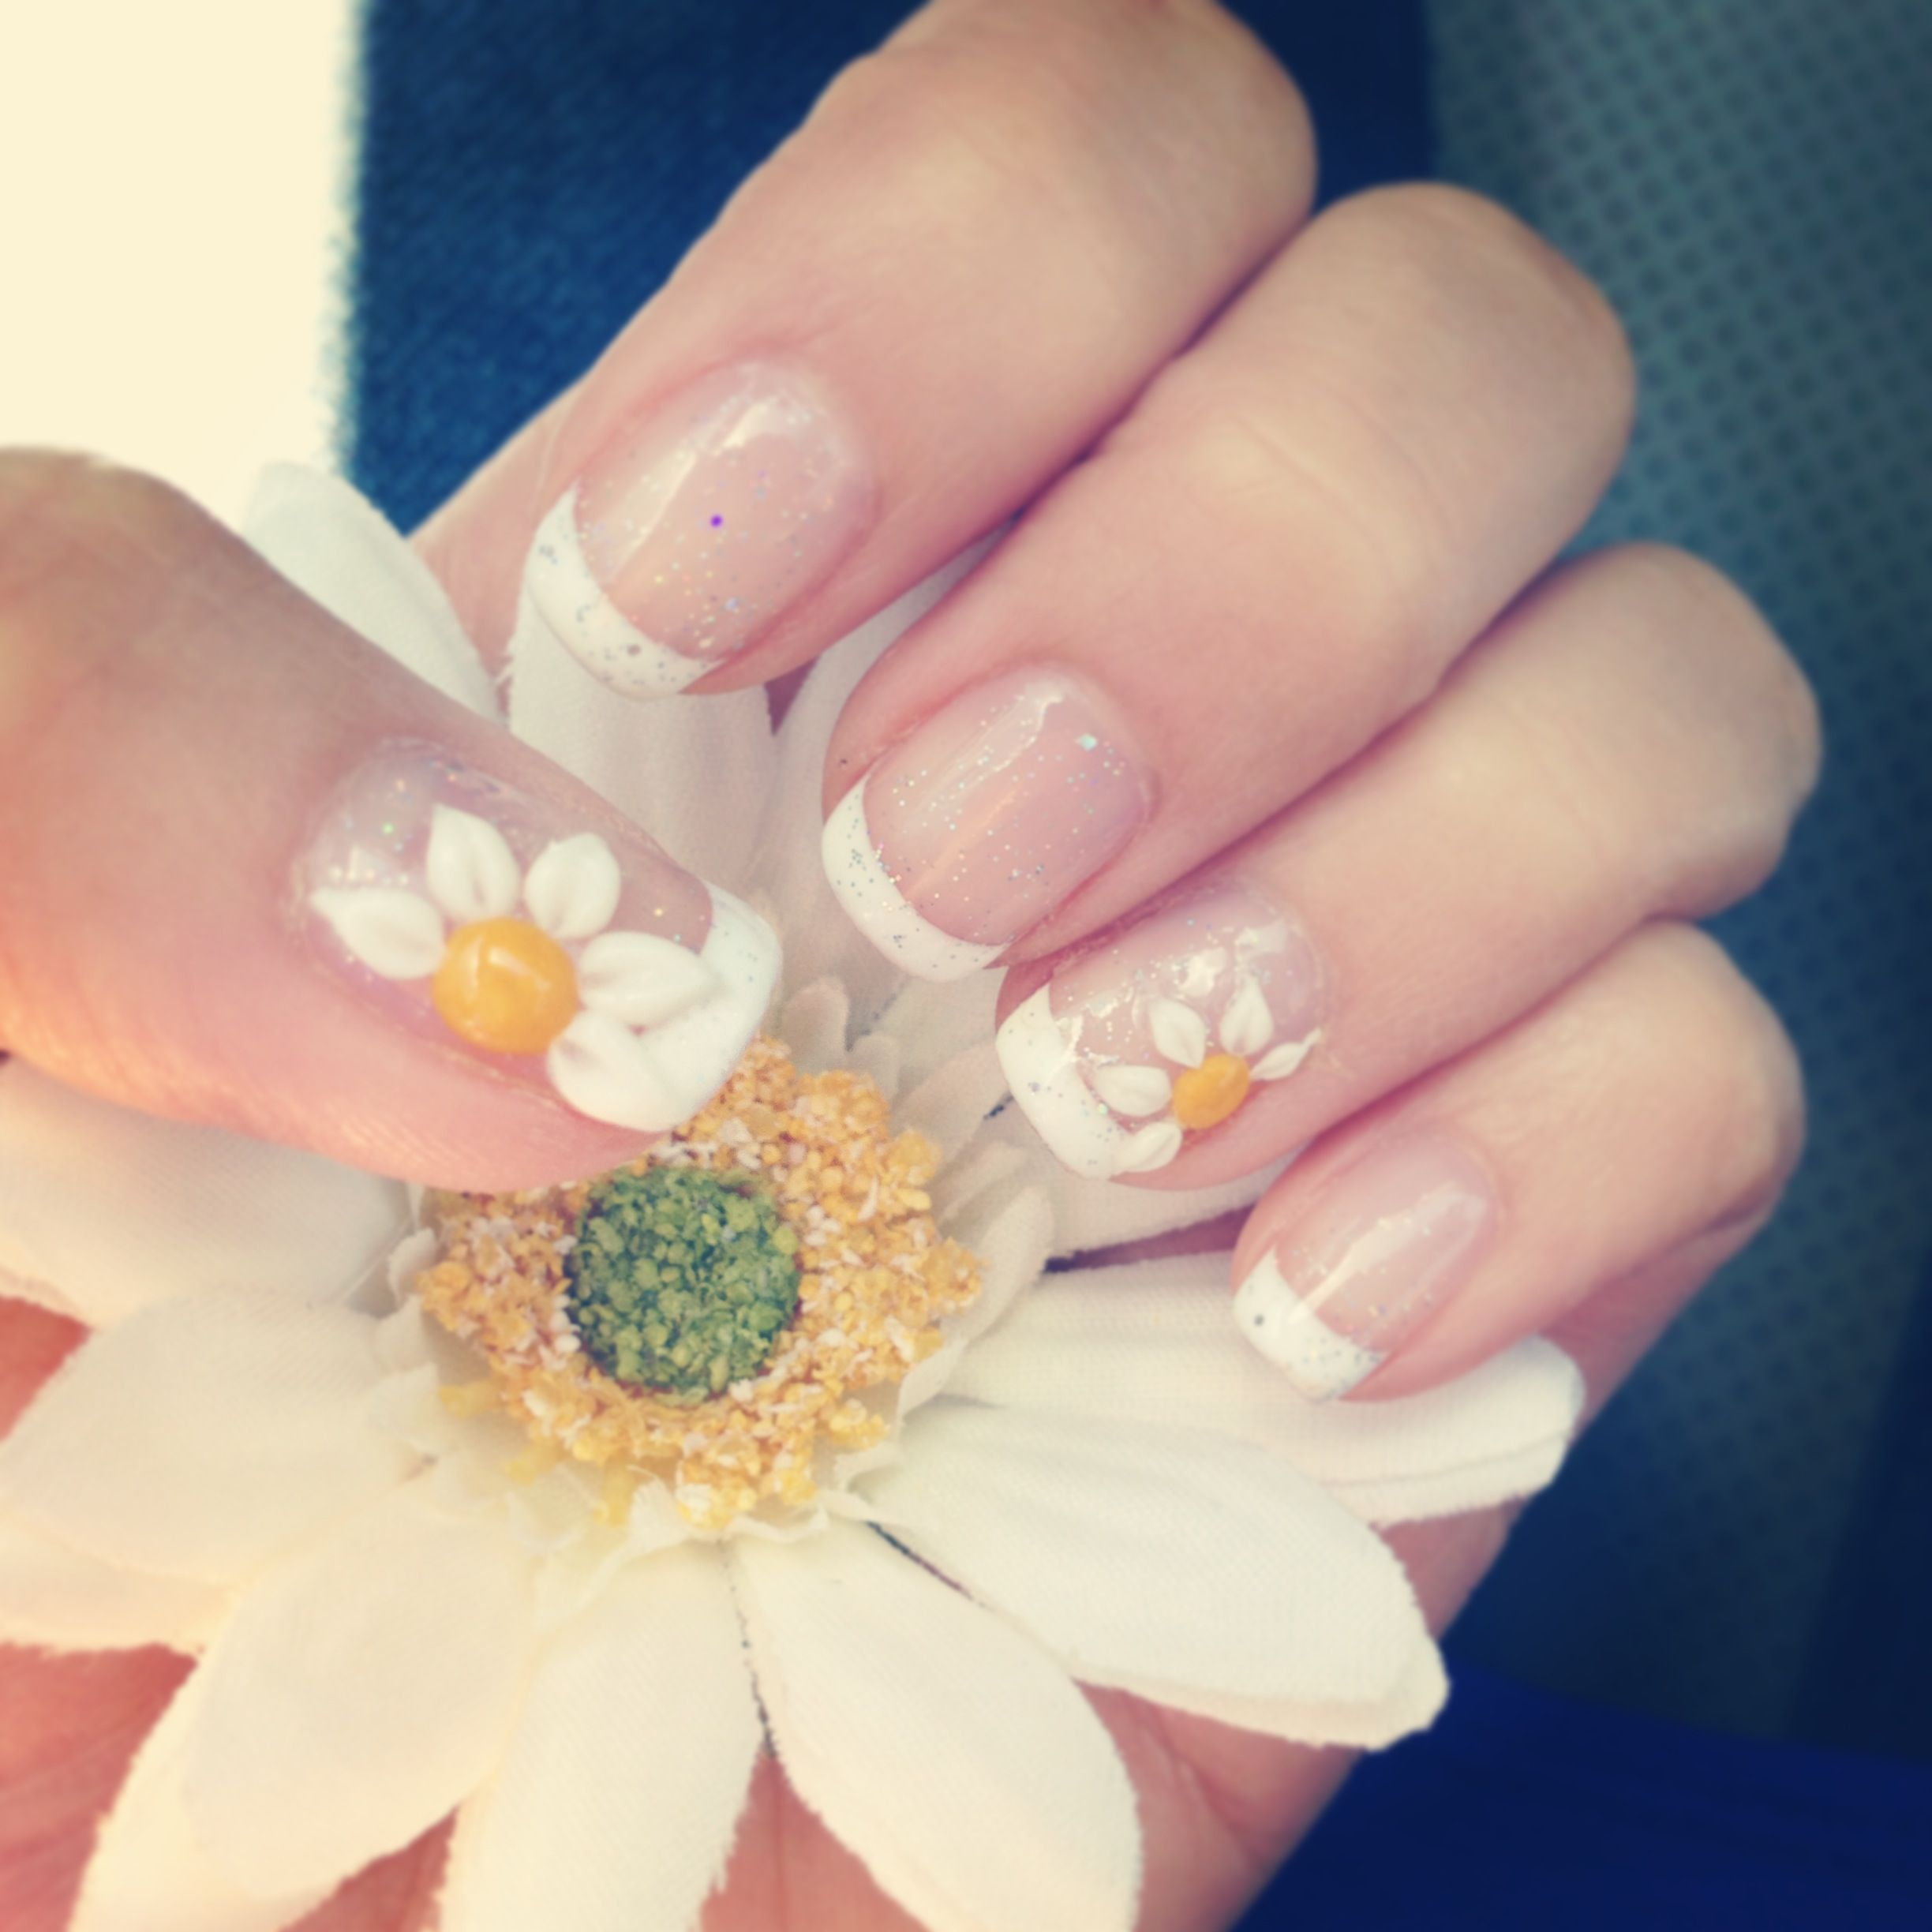 My EDC daisy nails! So excited! | Hair, Makeup, and Nails ...